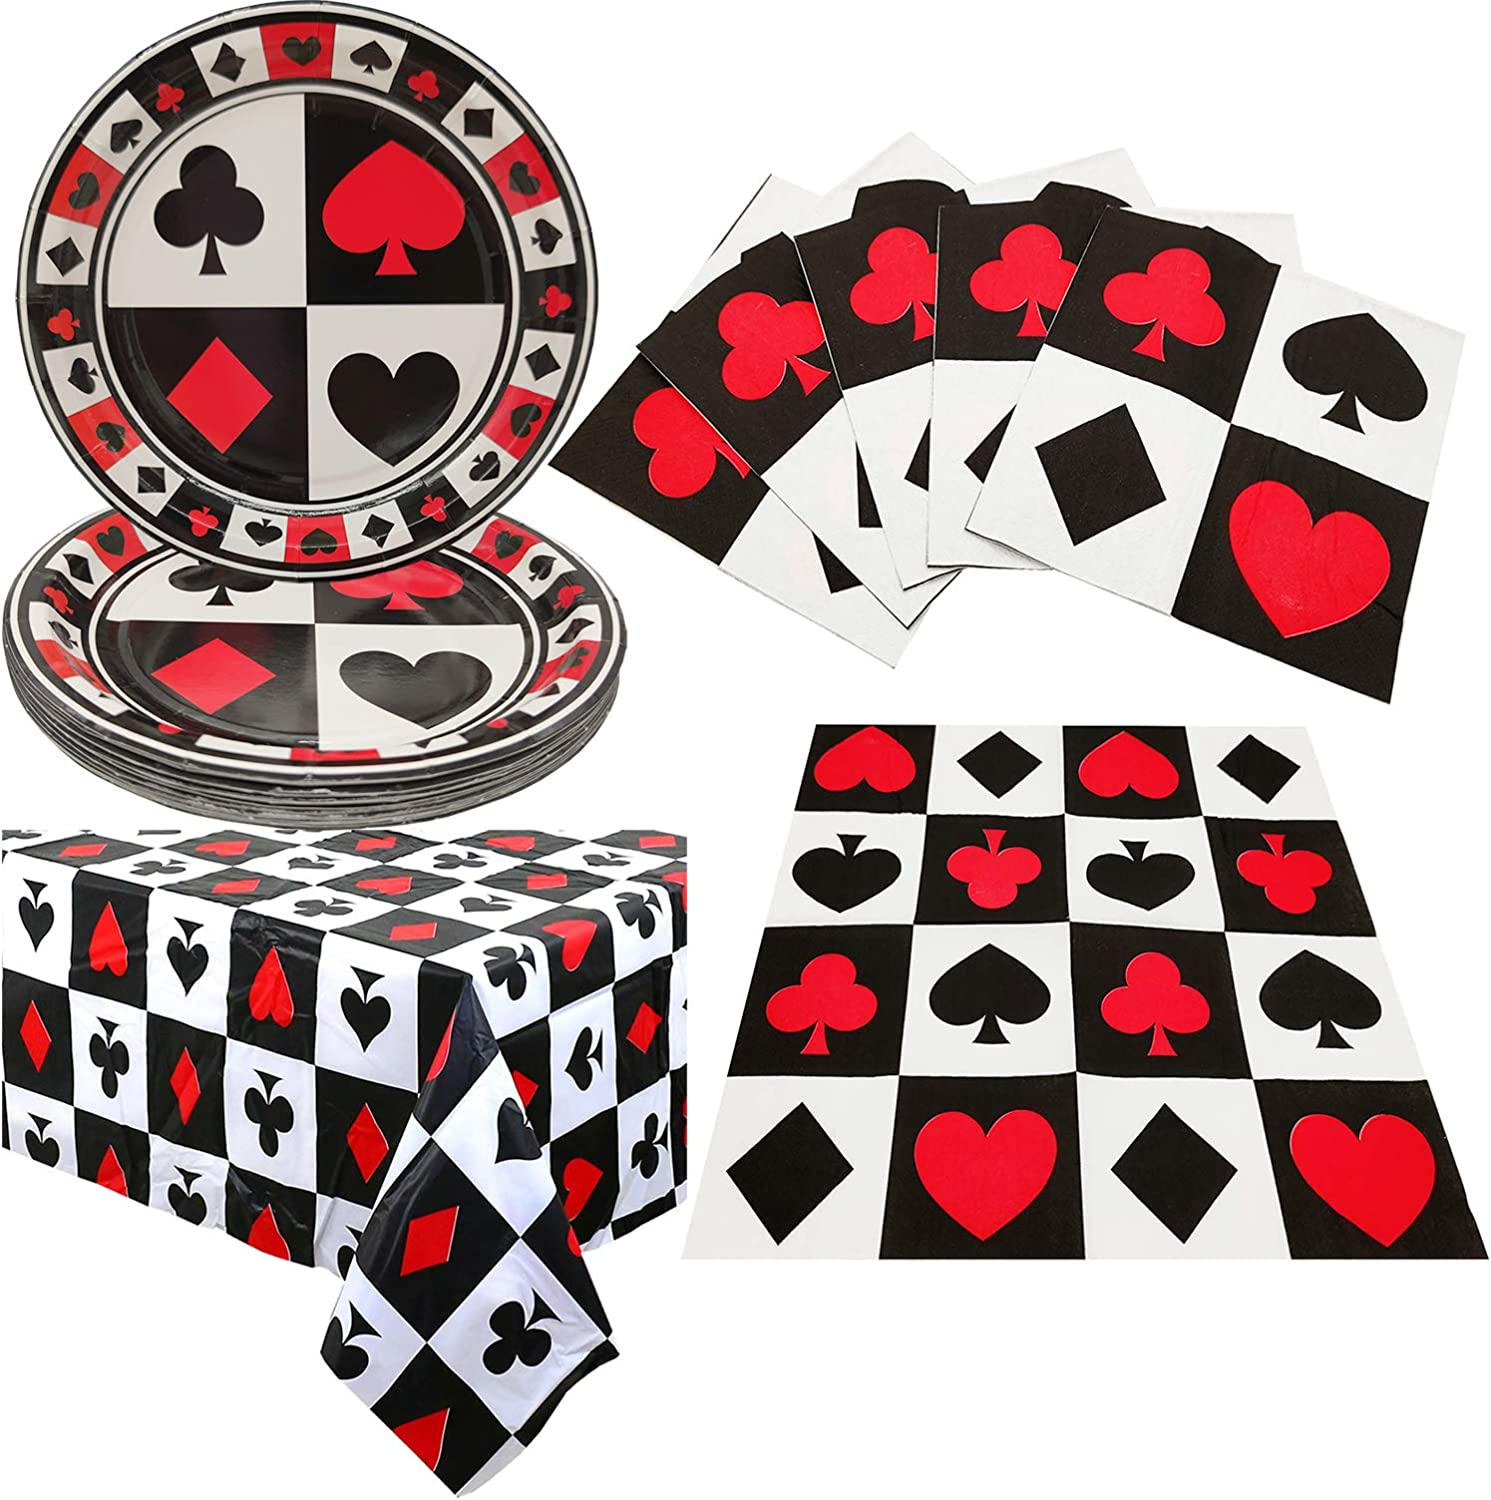 Casino Poker Game Themed Birthday Party Supplies and Decorations -Plastic Table Cover,Plates,Napkins for Arts & Crafts, Poker Patrol Party Supplies for Las Vegas Theme Casino Party 16 Guest